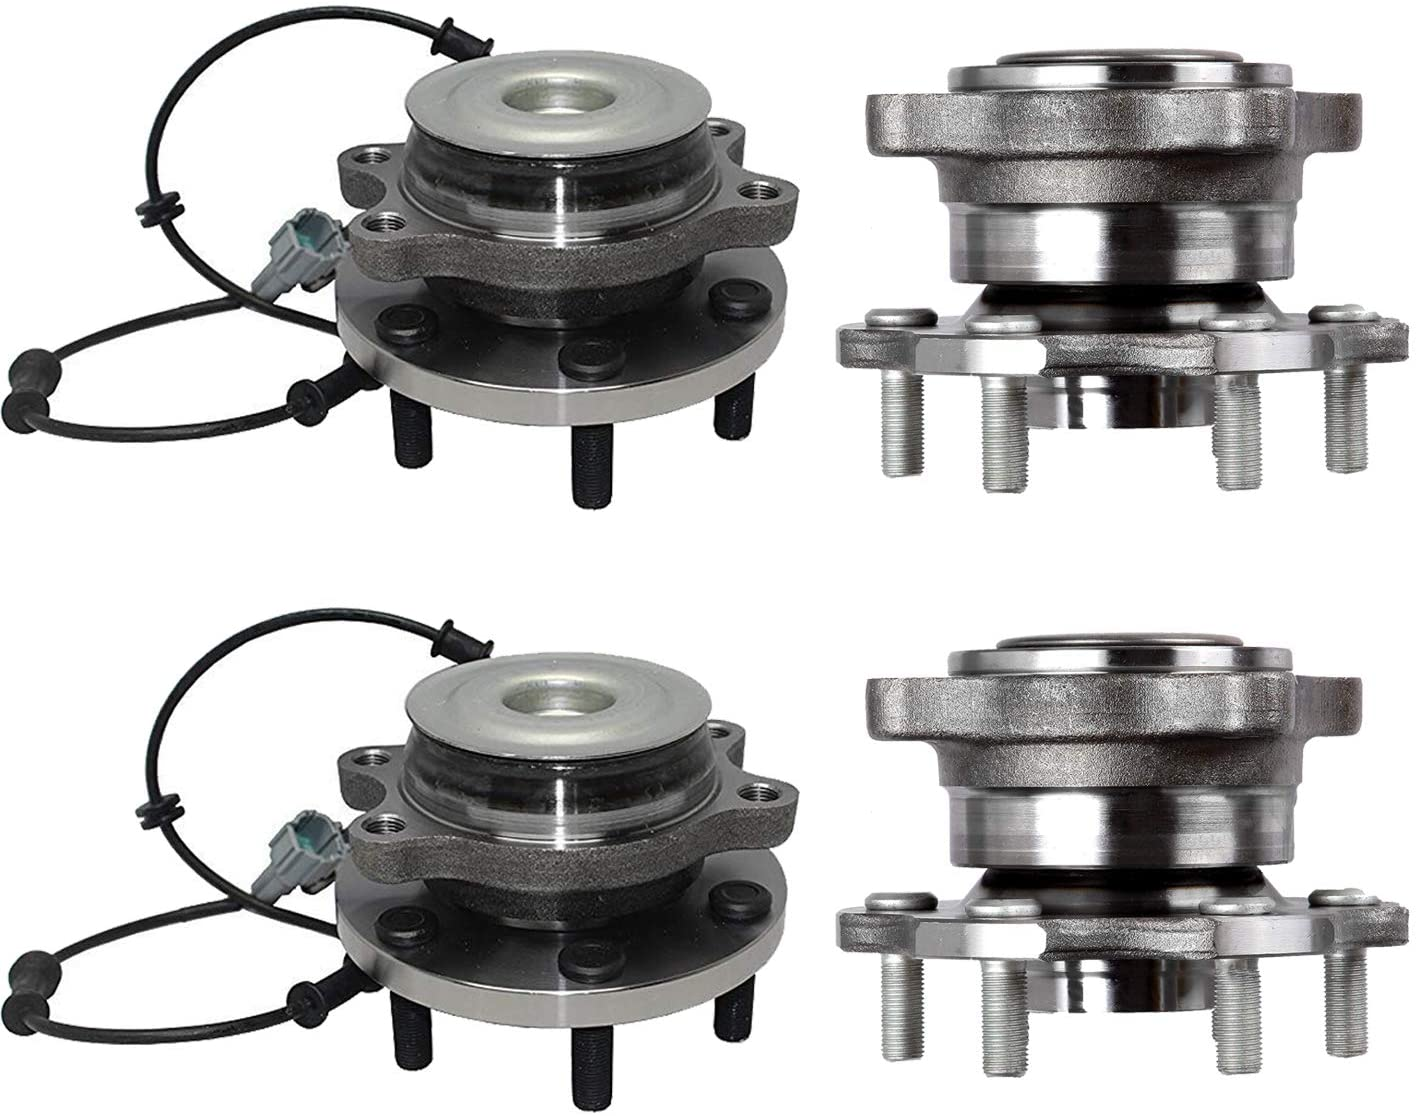 Bodeman - (4) Front and Rear Wheel Bearing and Hub Assemblies for 2005-2012 Nissan Pathfinder - 4WD Only